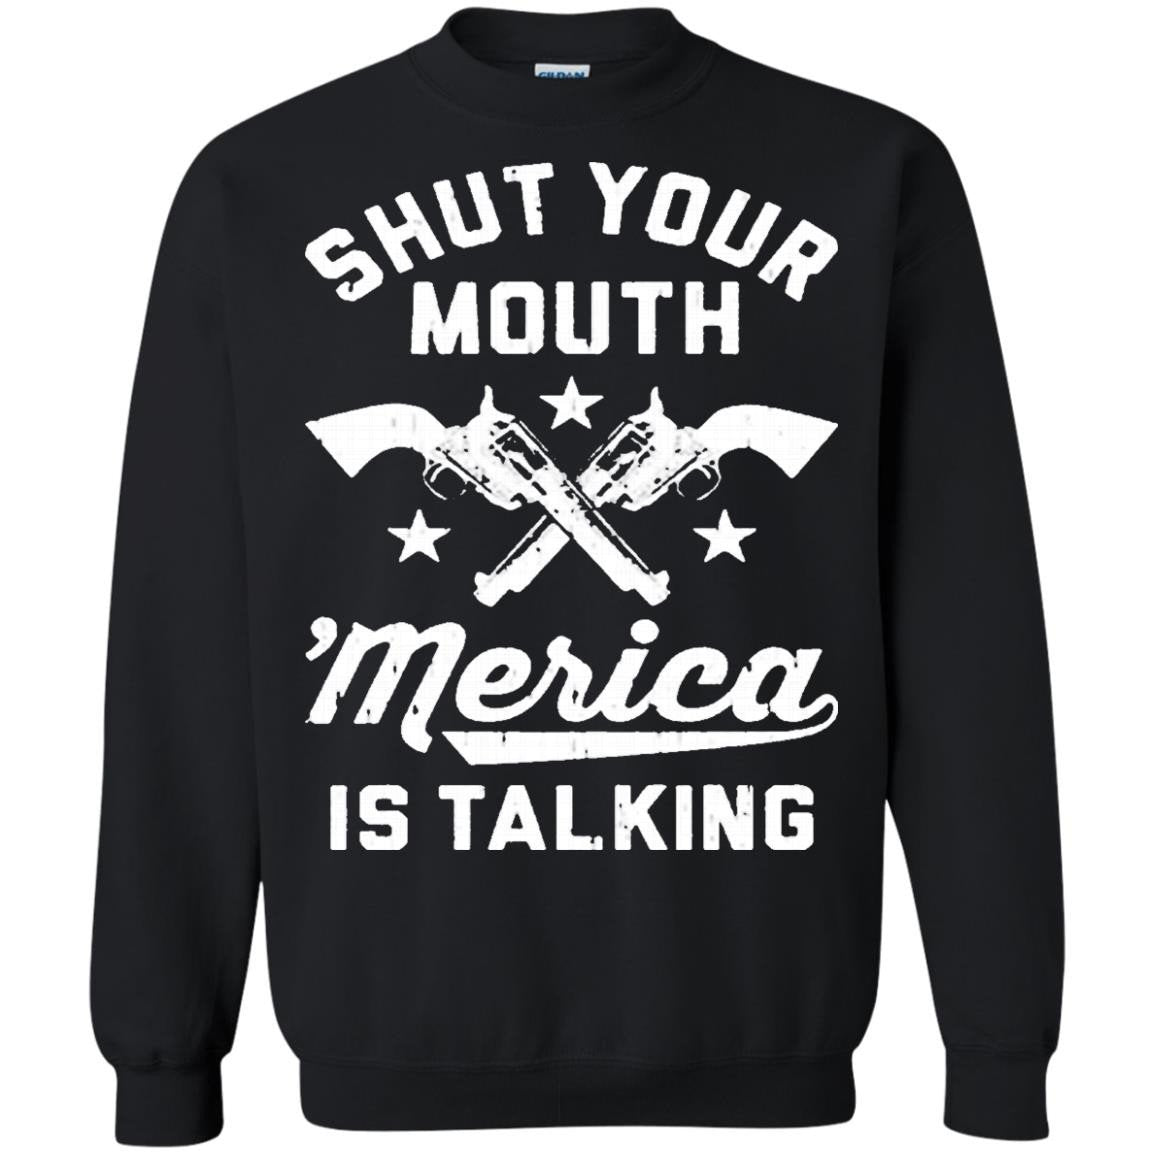 America Shirts SHUT YOUR MOUTH 'MERICA IS TALKING T-shirts Hoodies Sweatshirts